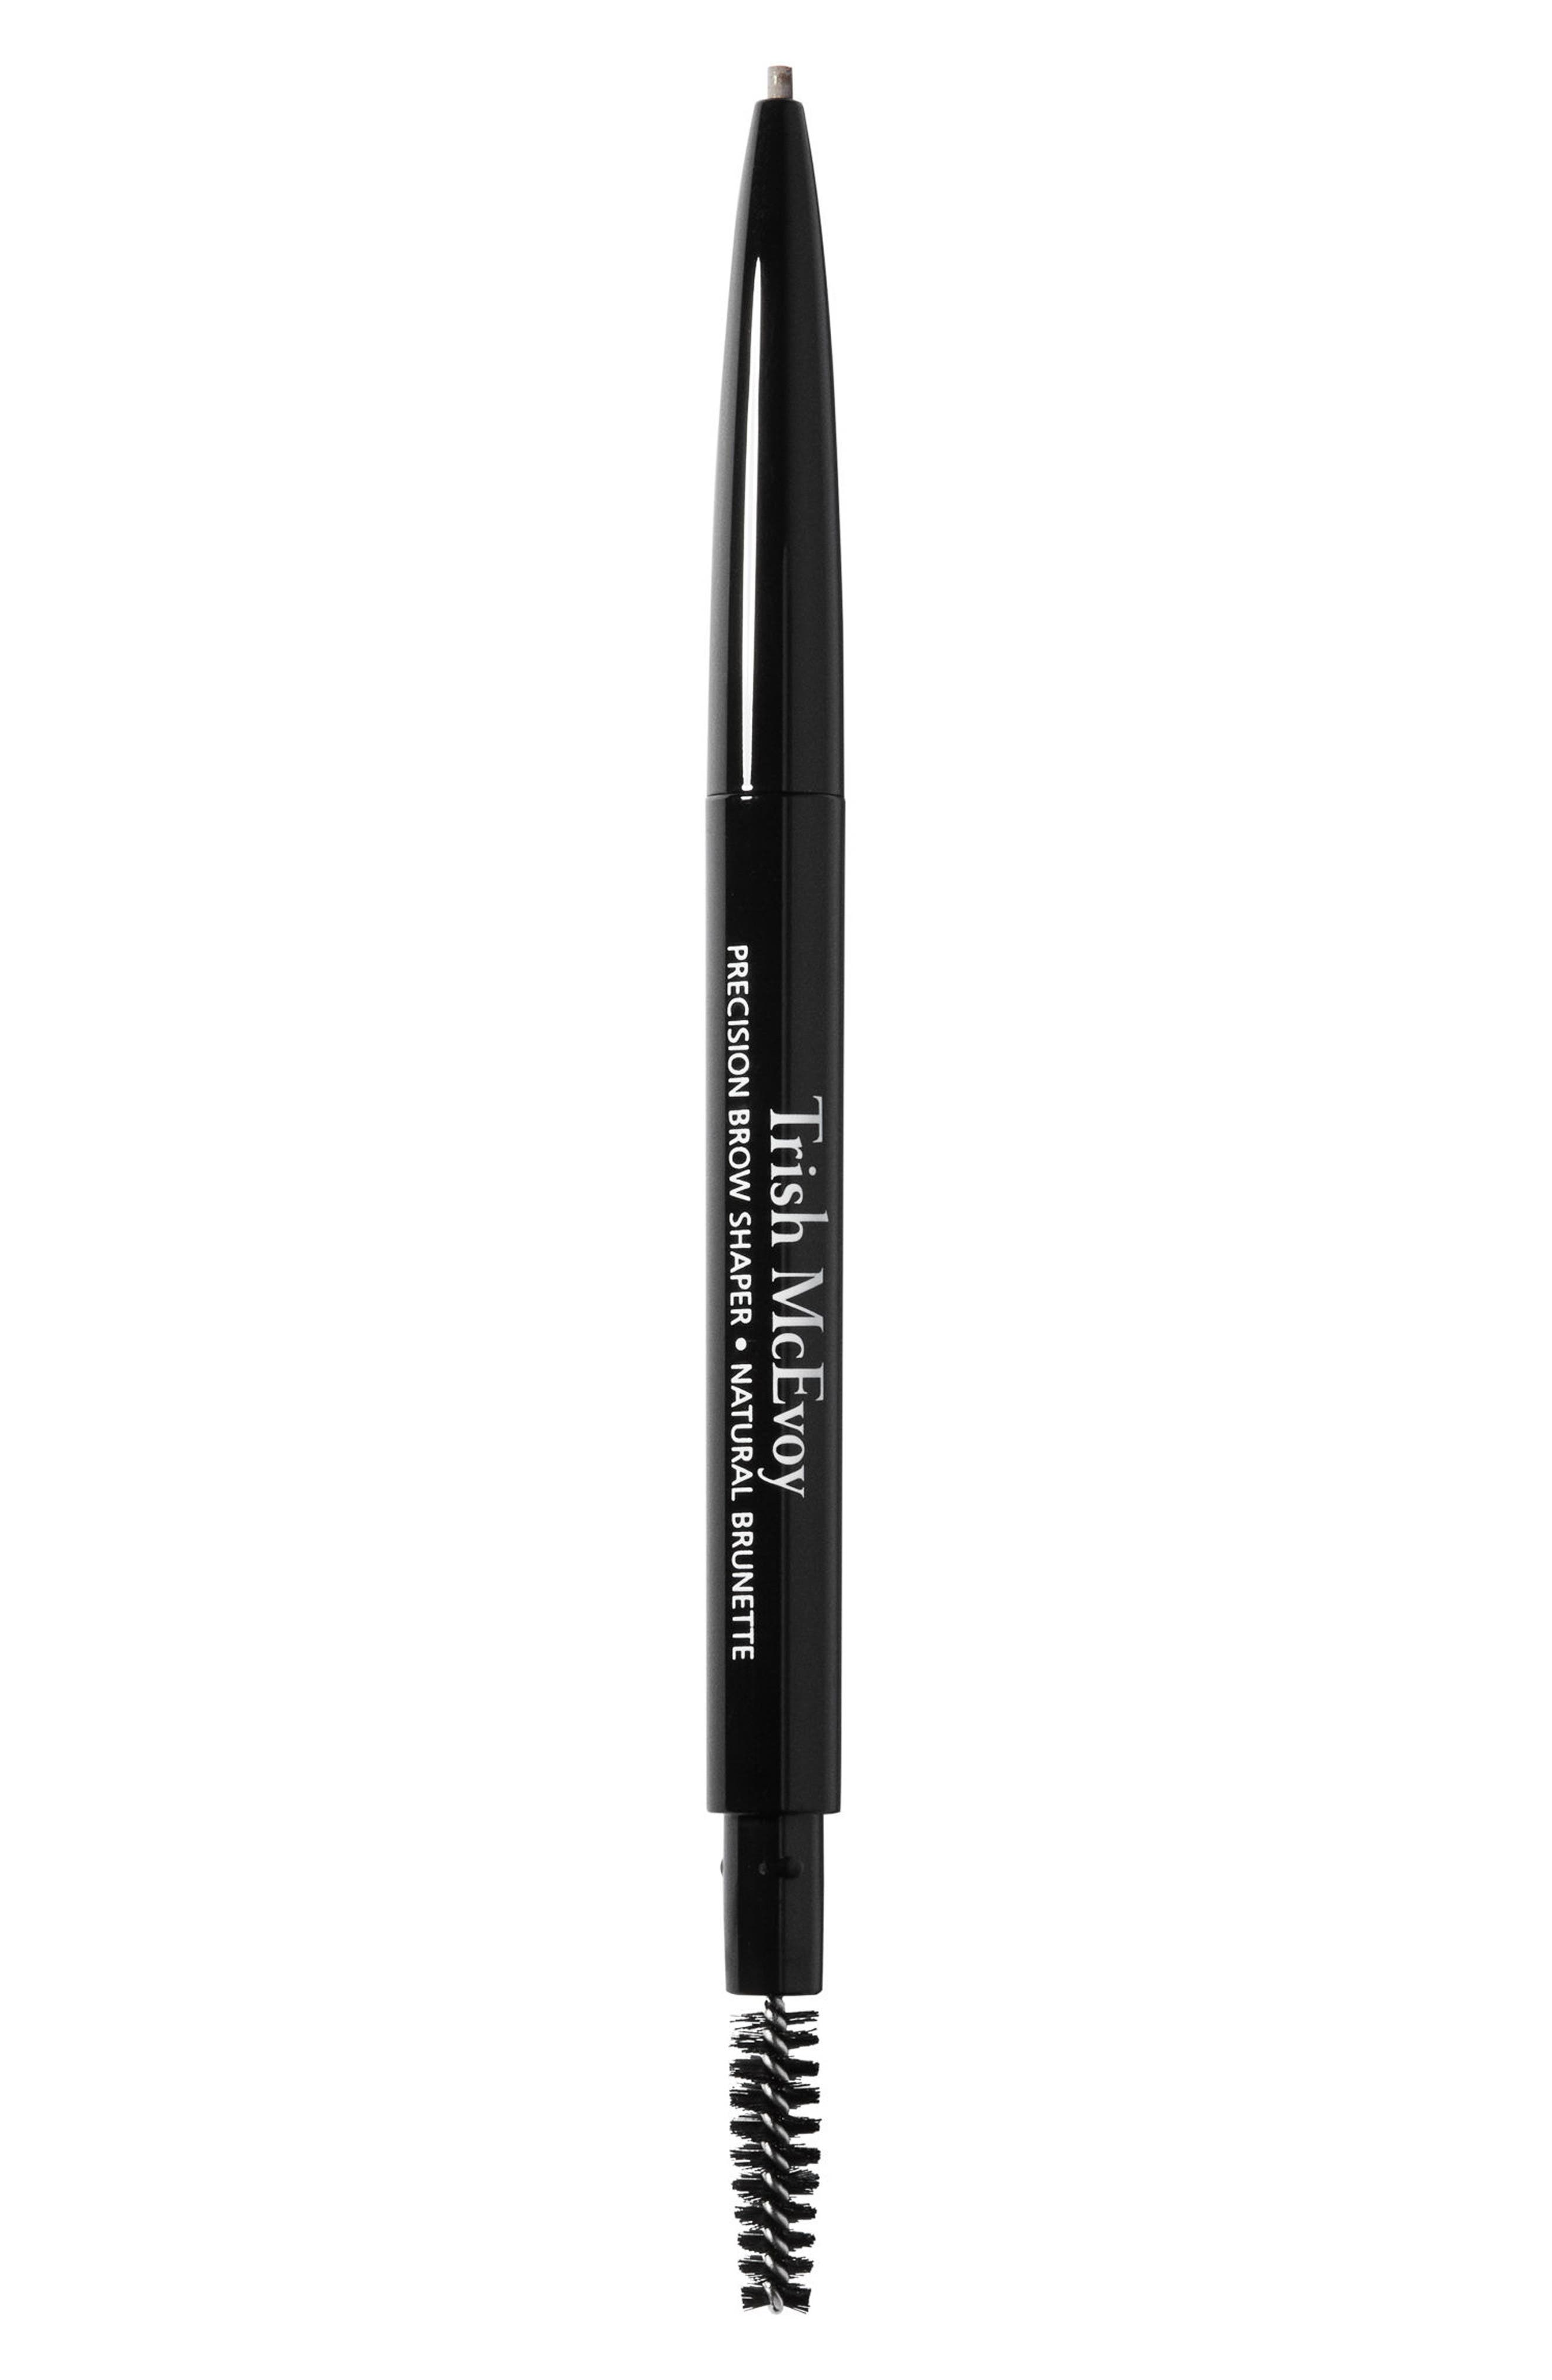 TRISH MCEVOY Precision Brow Shaper, Main, color, NATURAL BRUNETTE